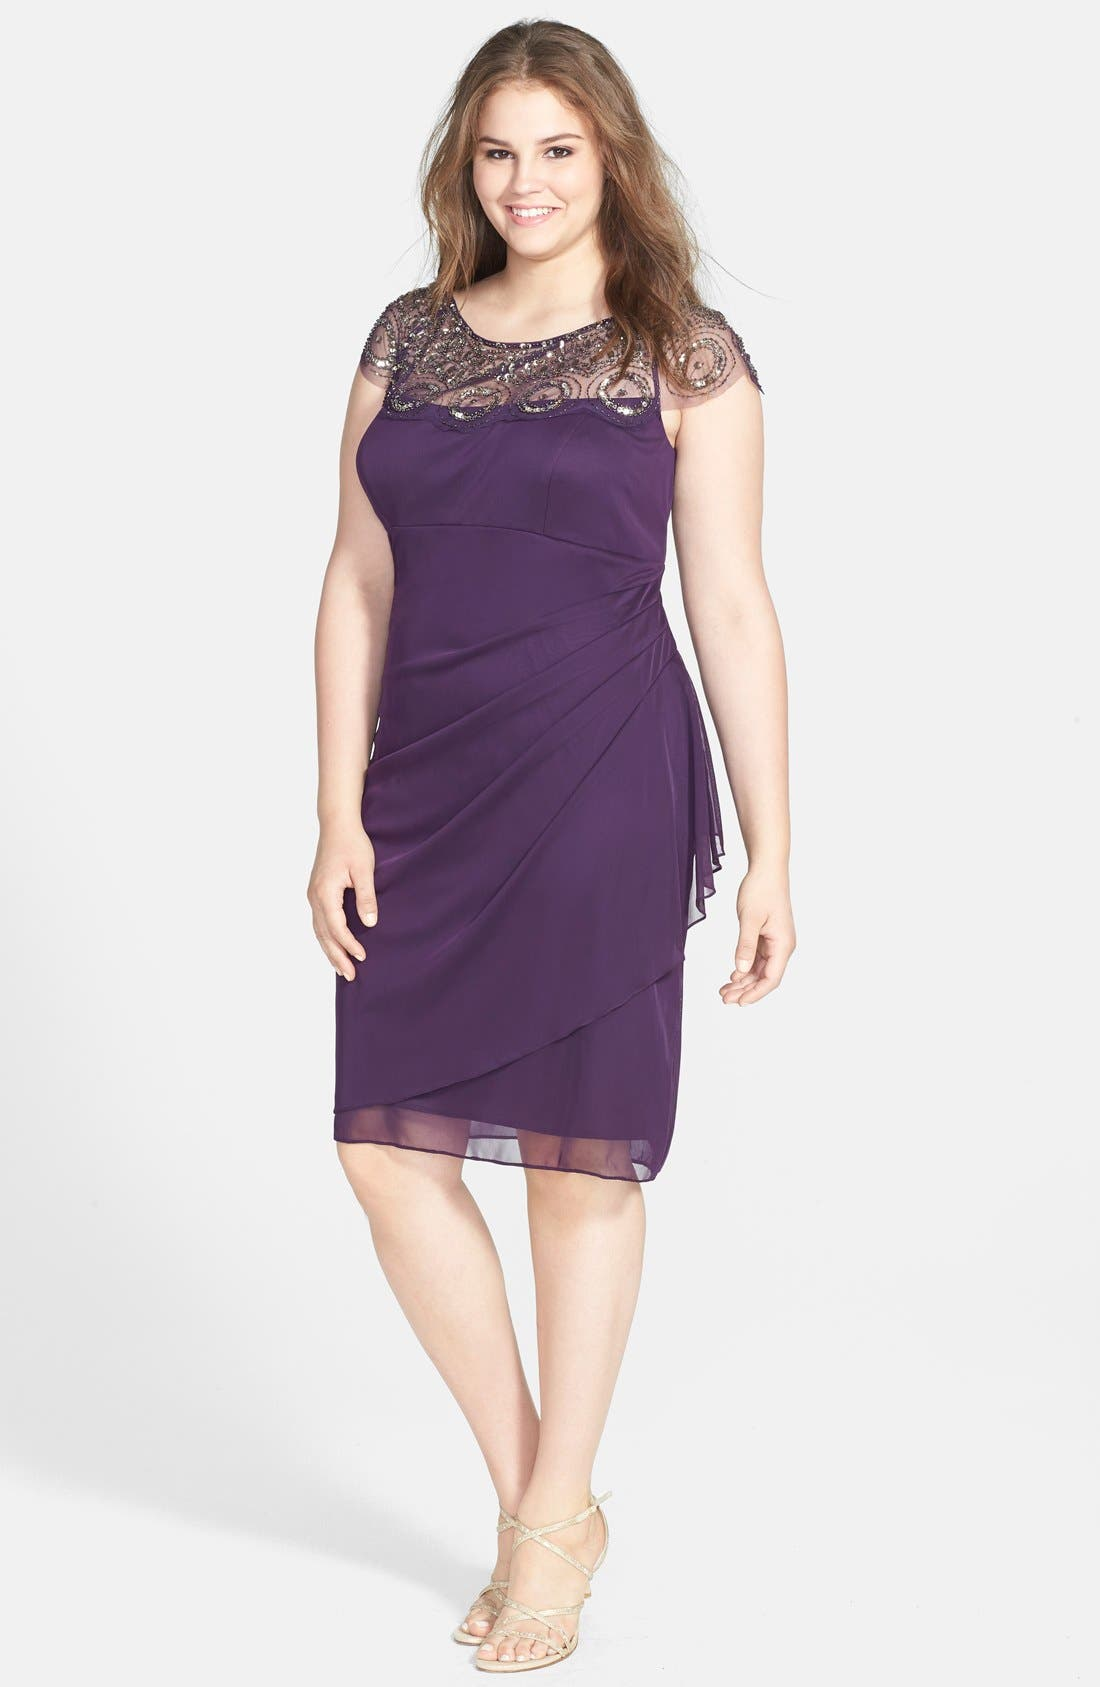 Alternate Image 1 Selected - Xscape Beaded Ruched Dress (Plus Size)